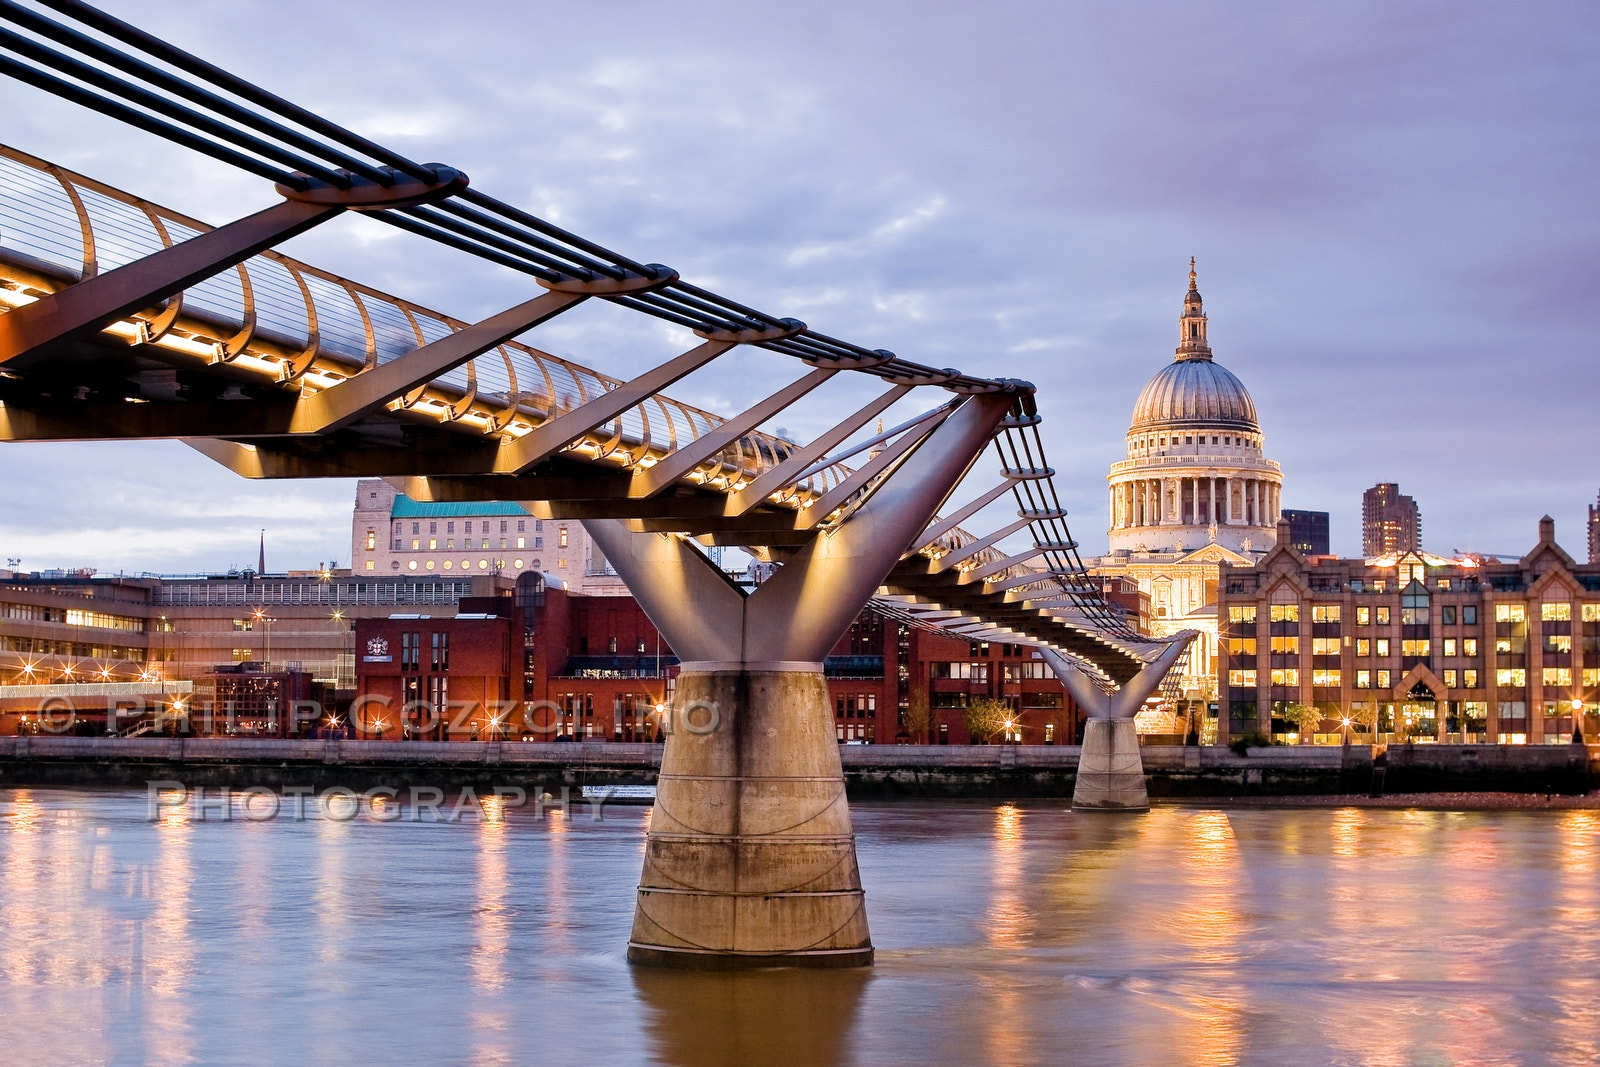 Photograph On the Thames by Philip Cozzolino on 500px